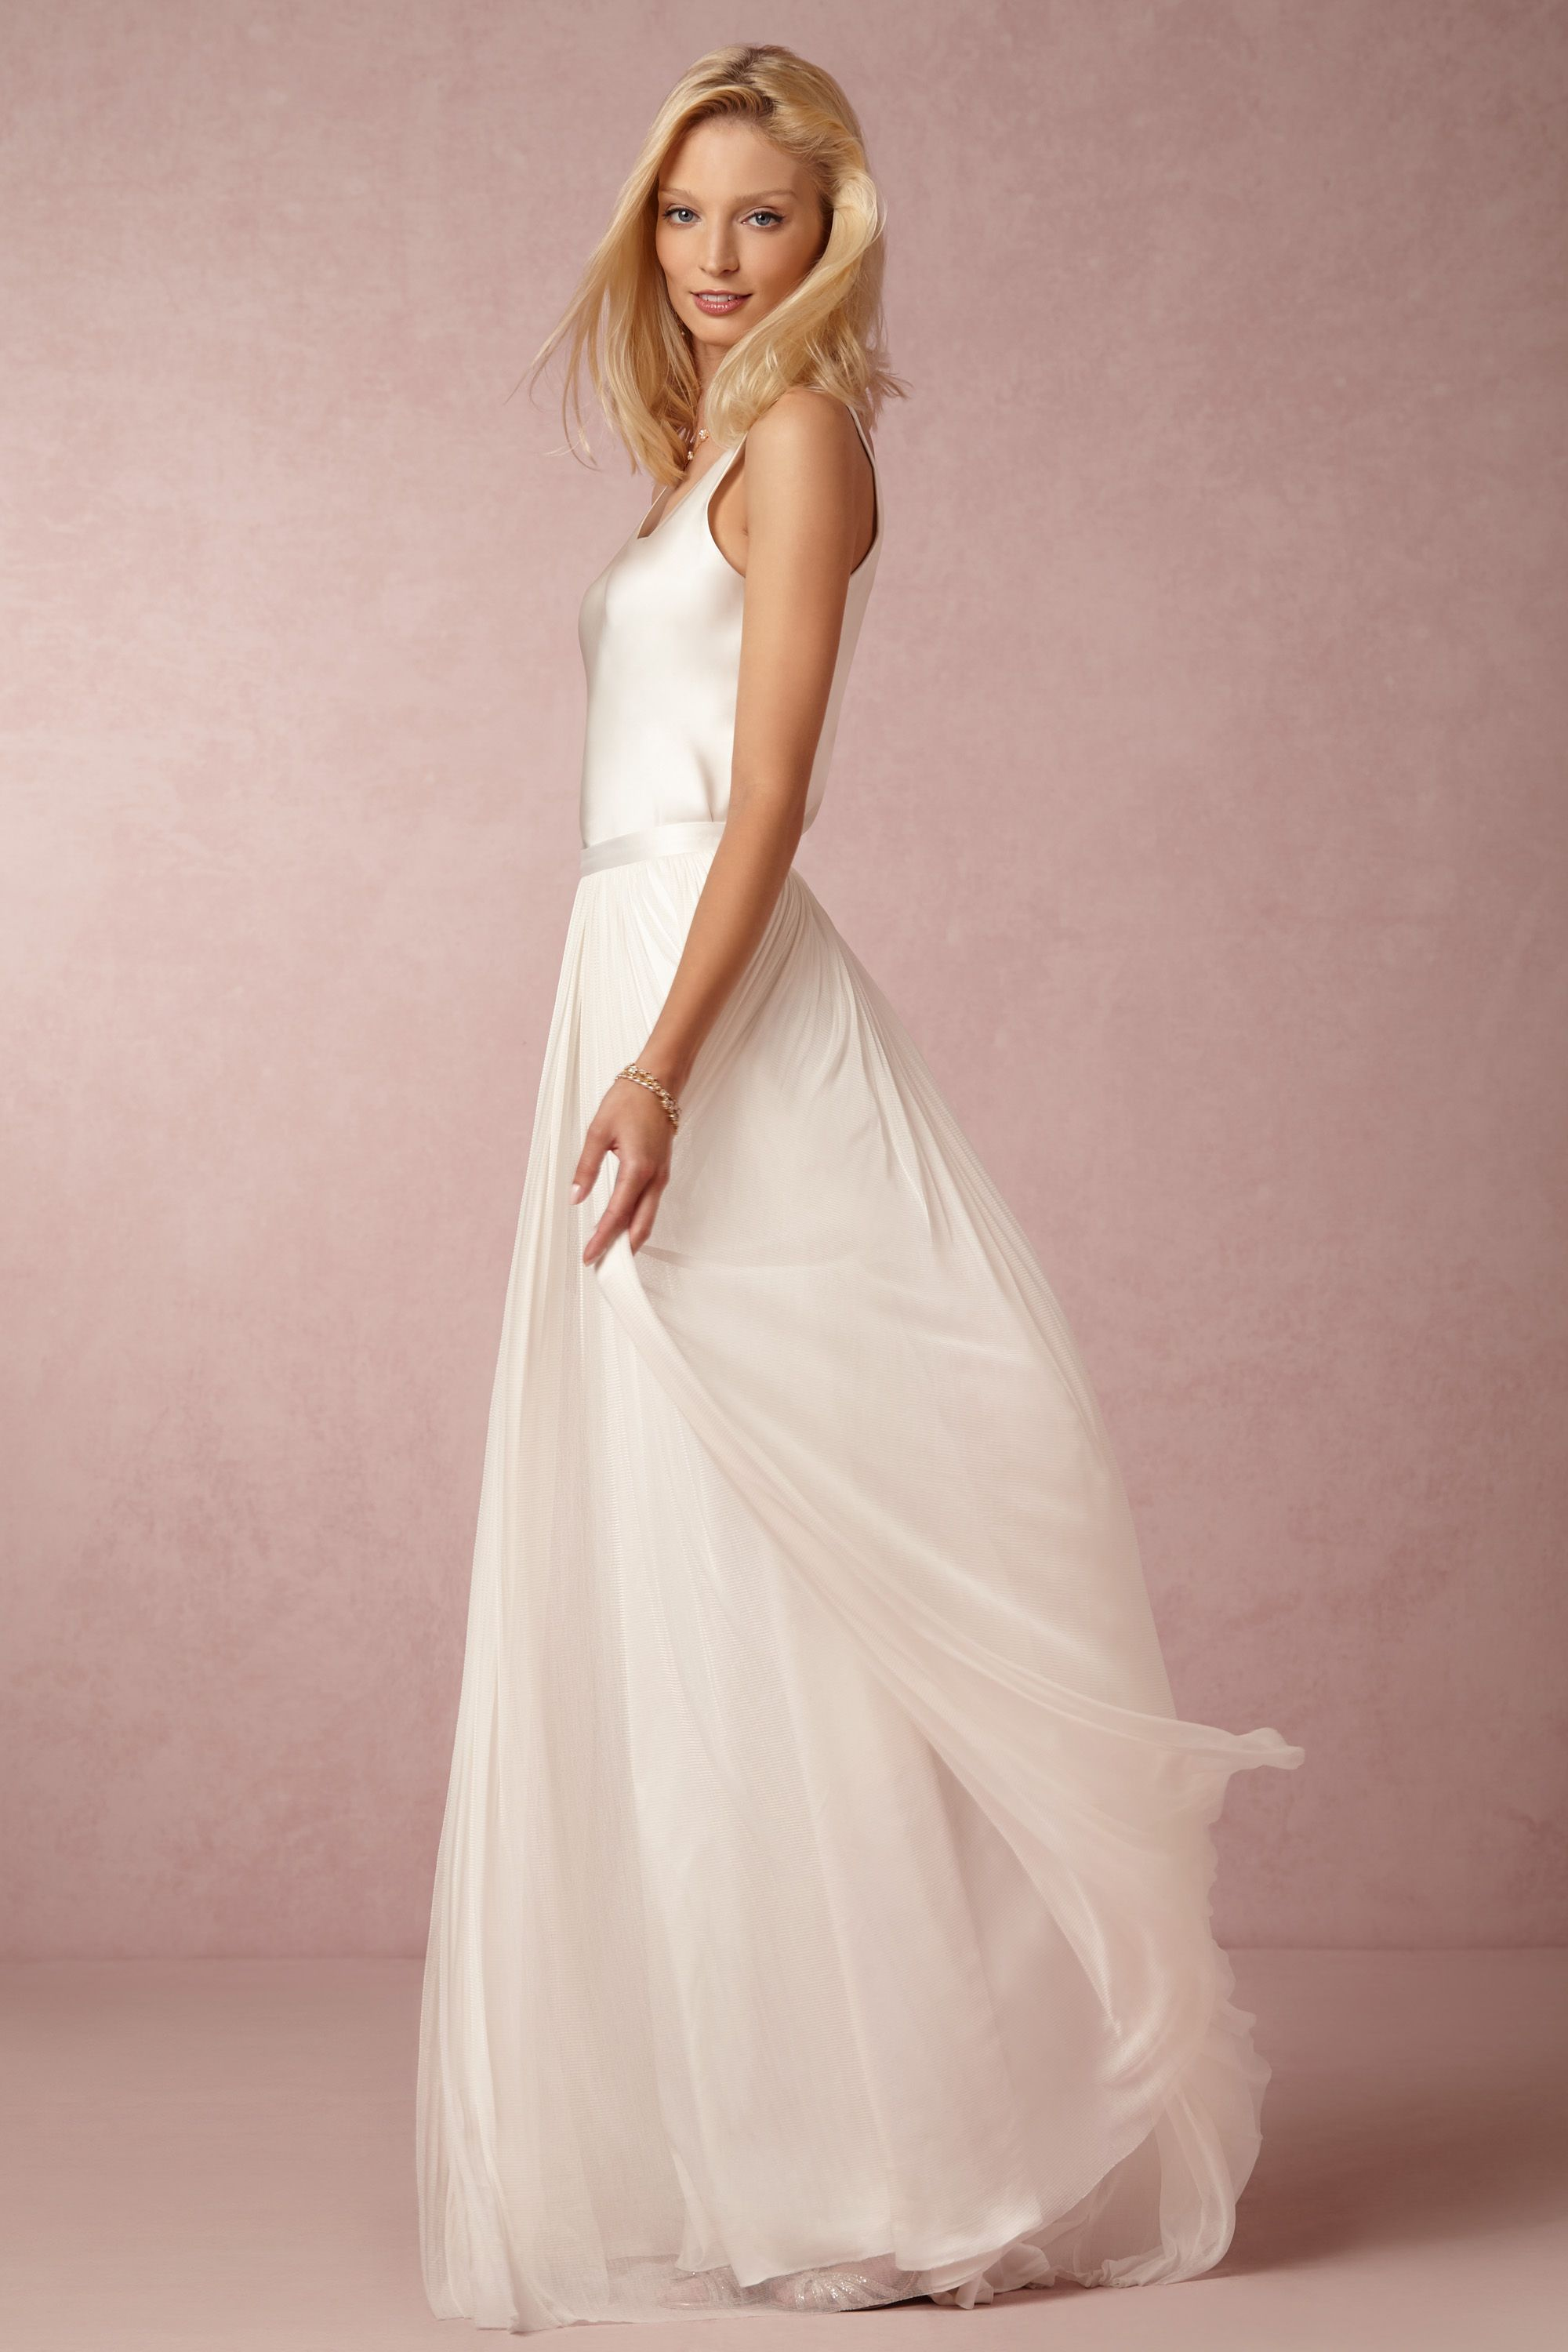 In Perpetuity Camisole & Anika Tulle Skirt from @BHLDN | Vestidos ...